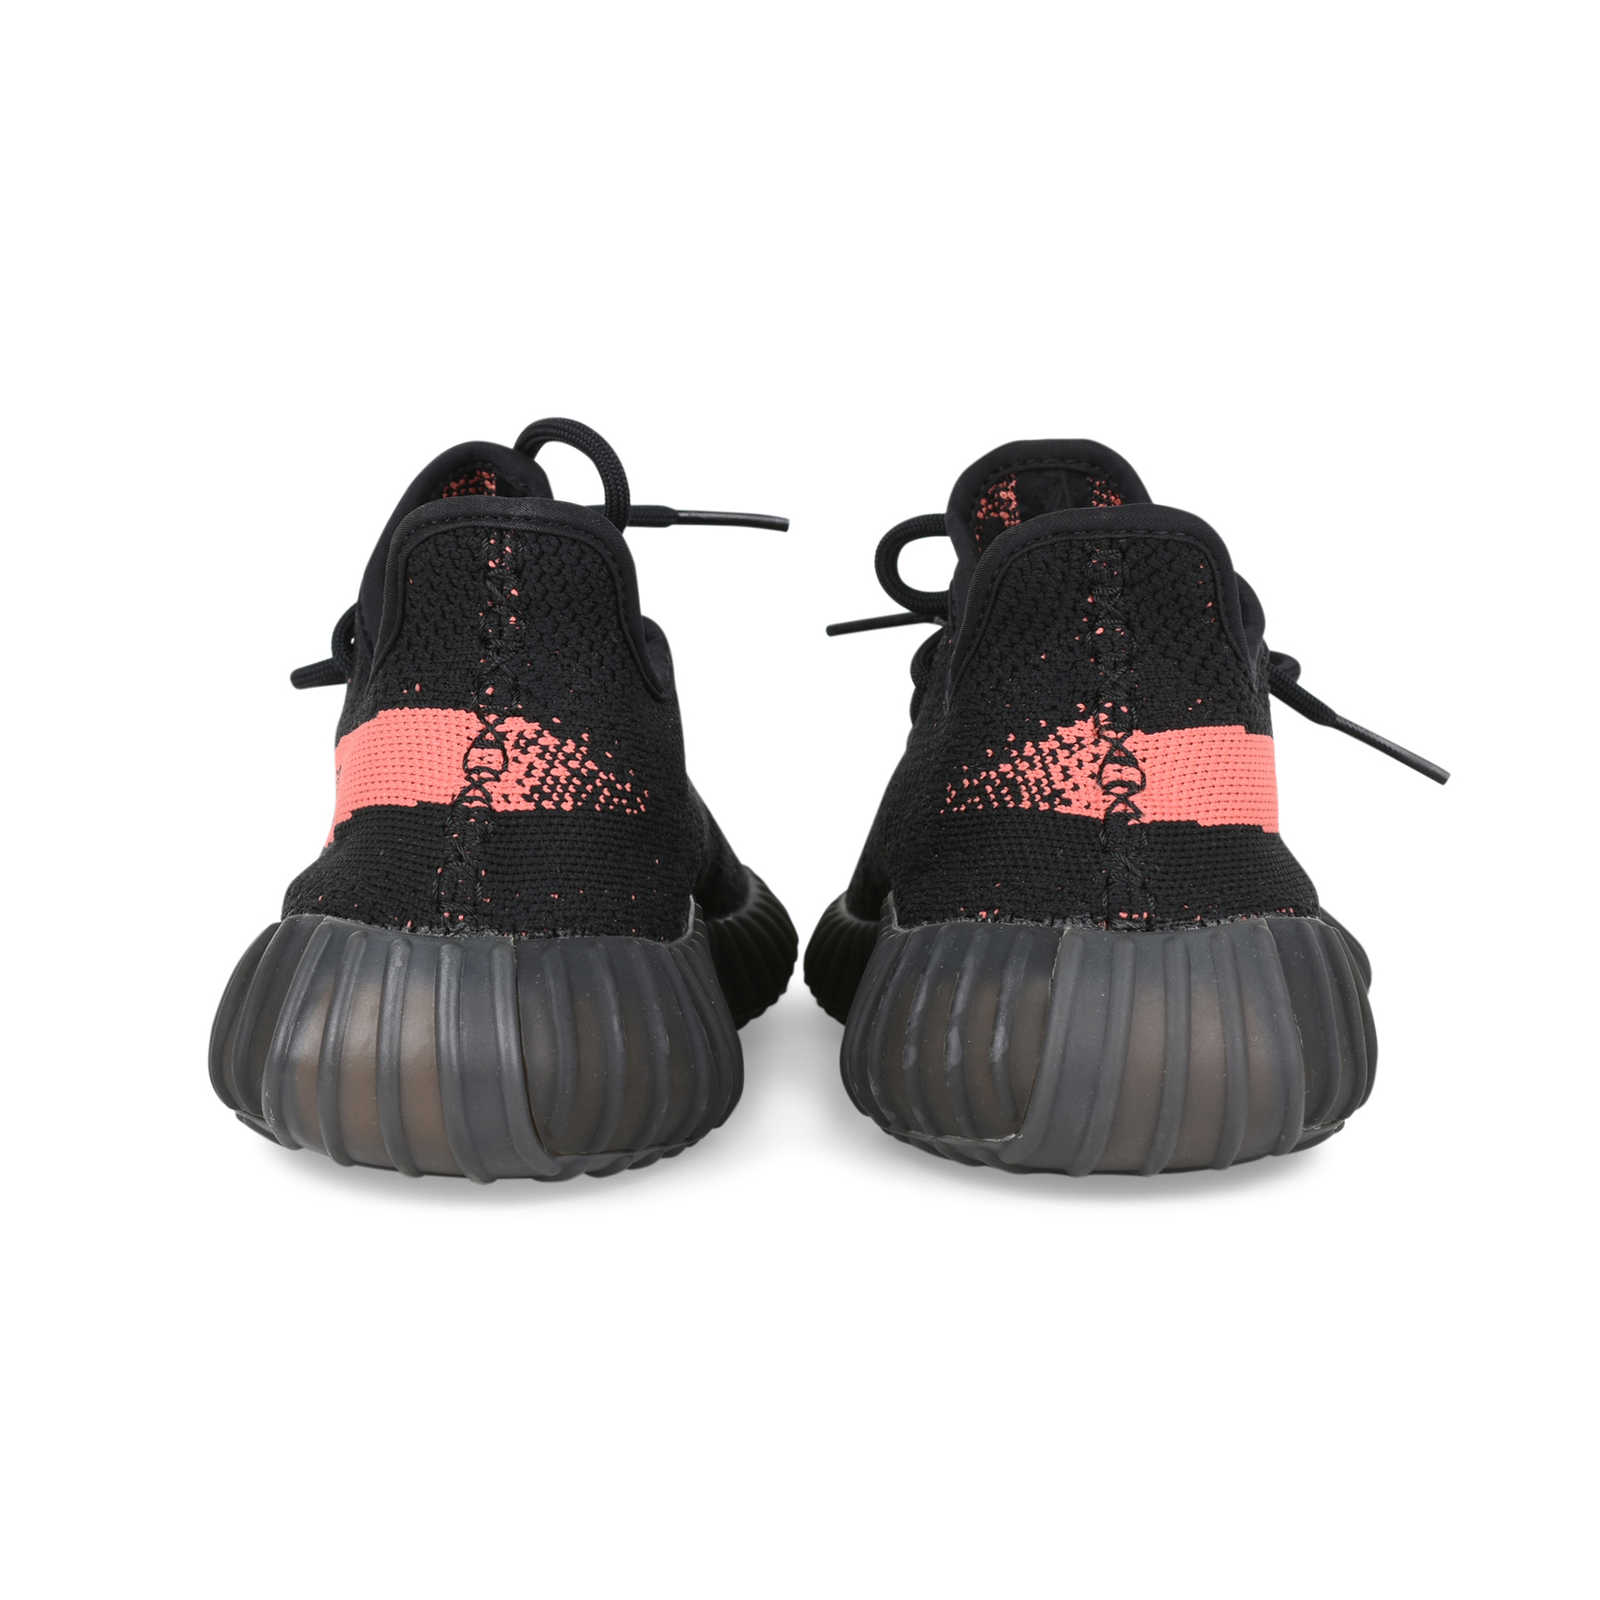 Authentic Second Hand Adidas Yeezys Yeezy Boost 350 V2 Black